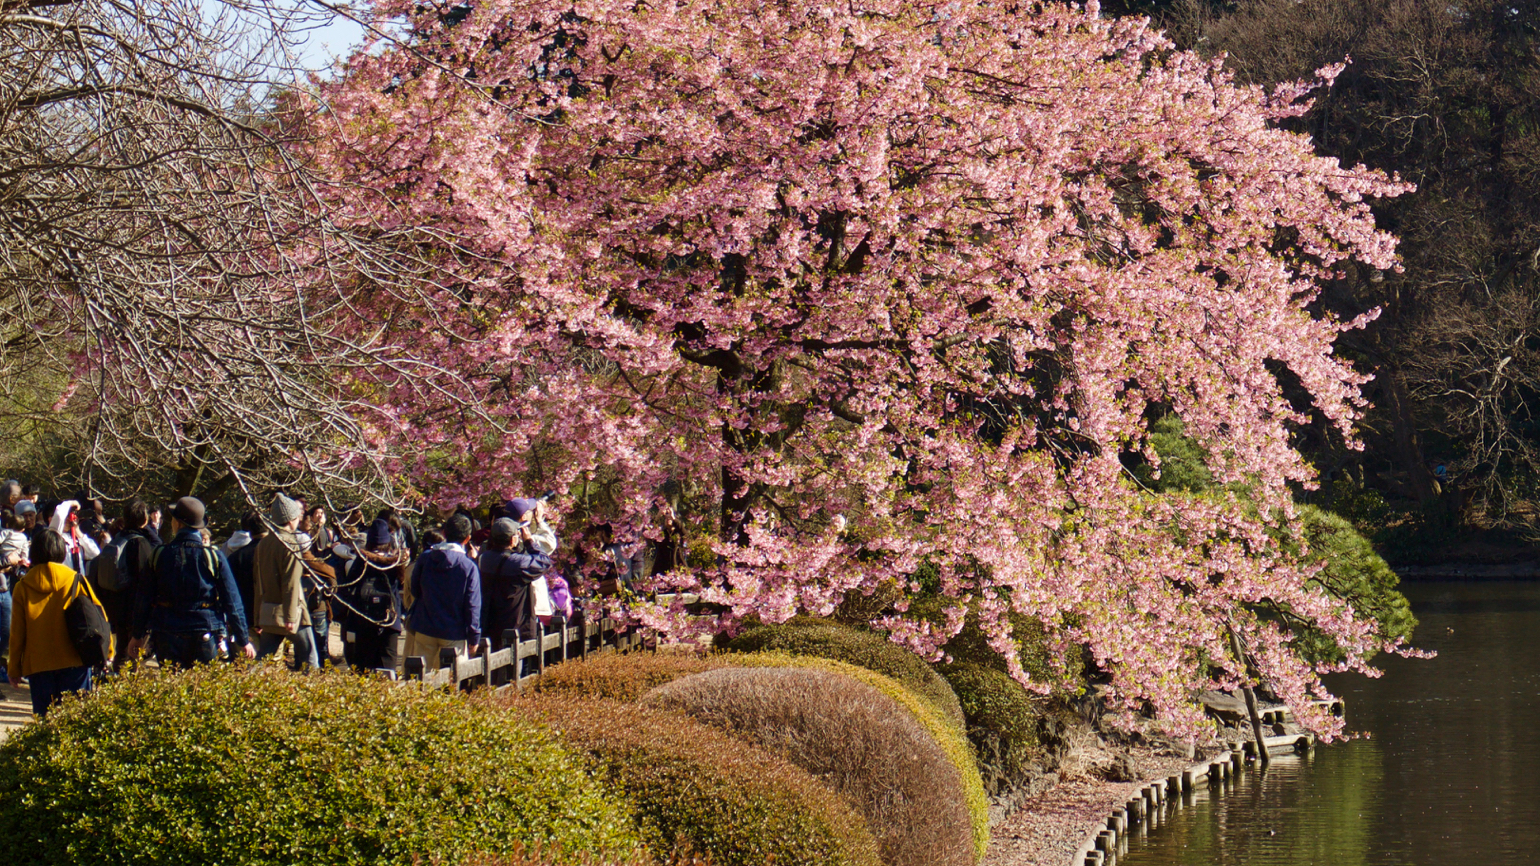 Shinjuku Gyoen photographers are taking pictures of Cherry in bloom